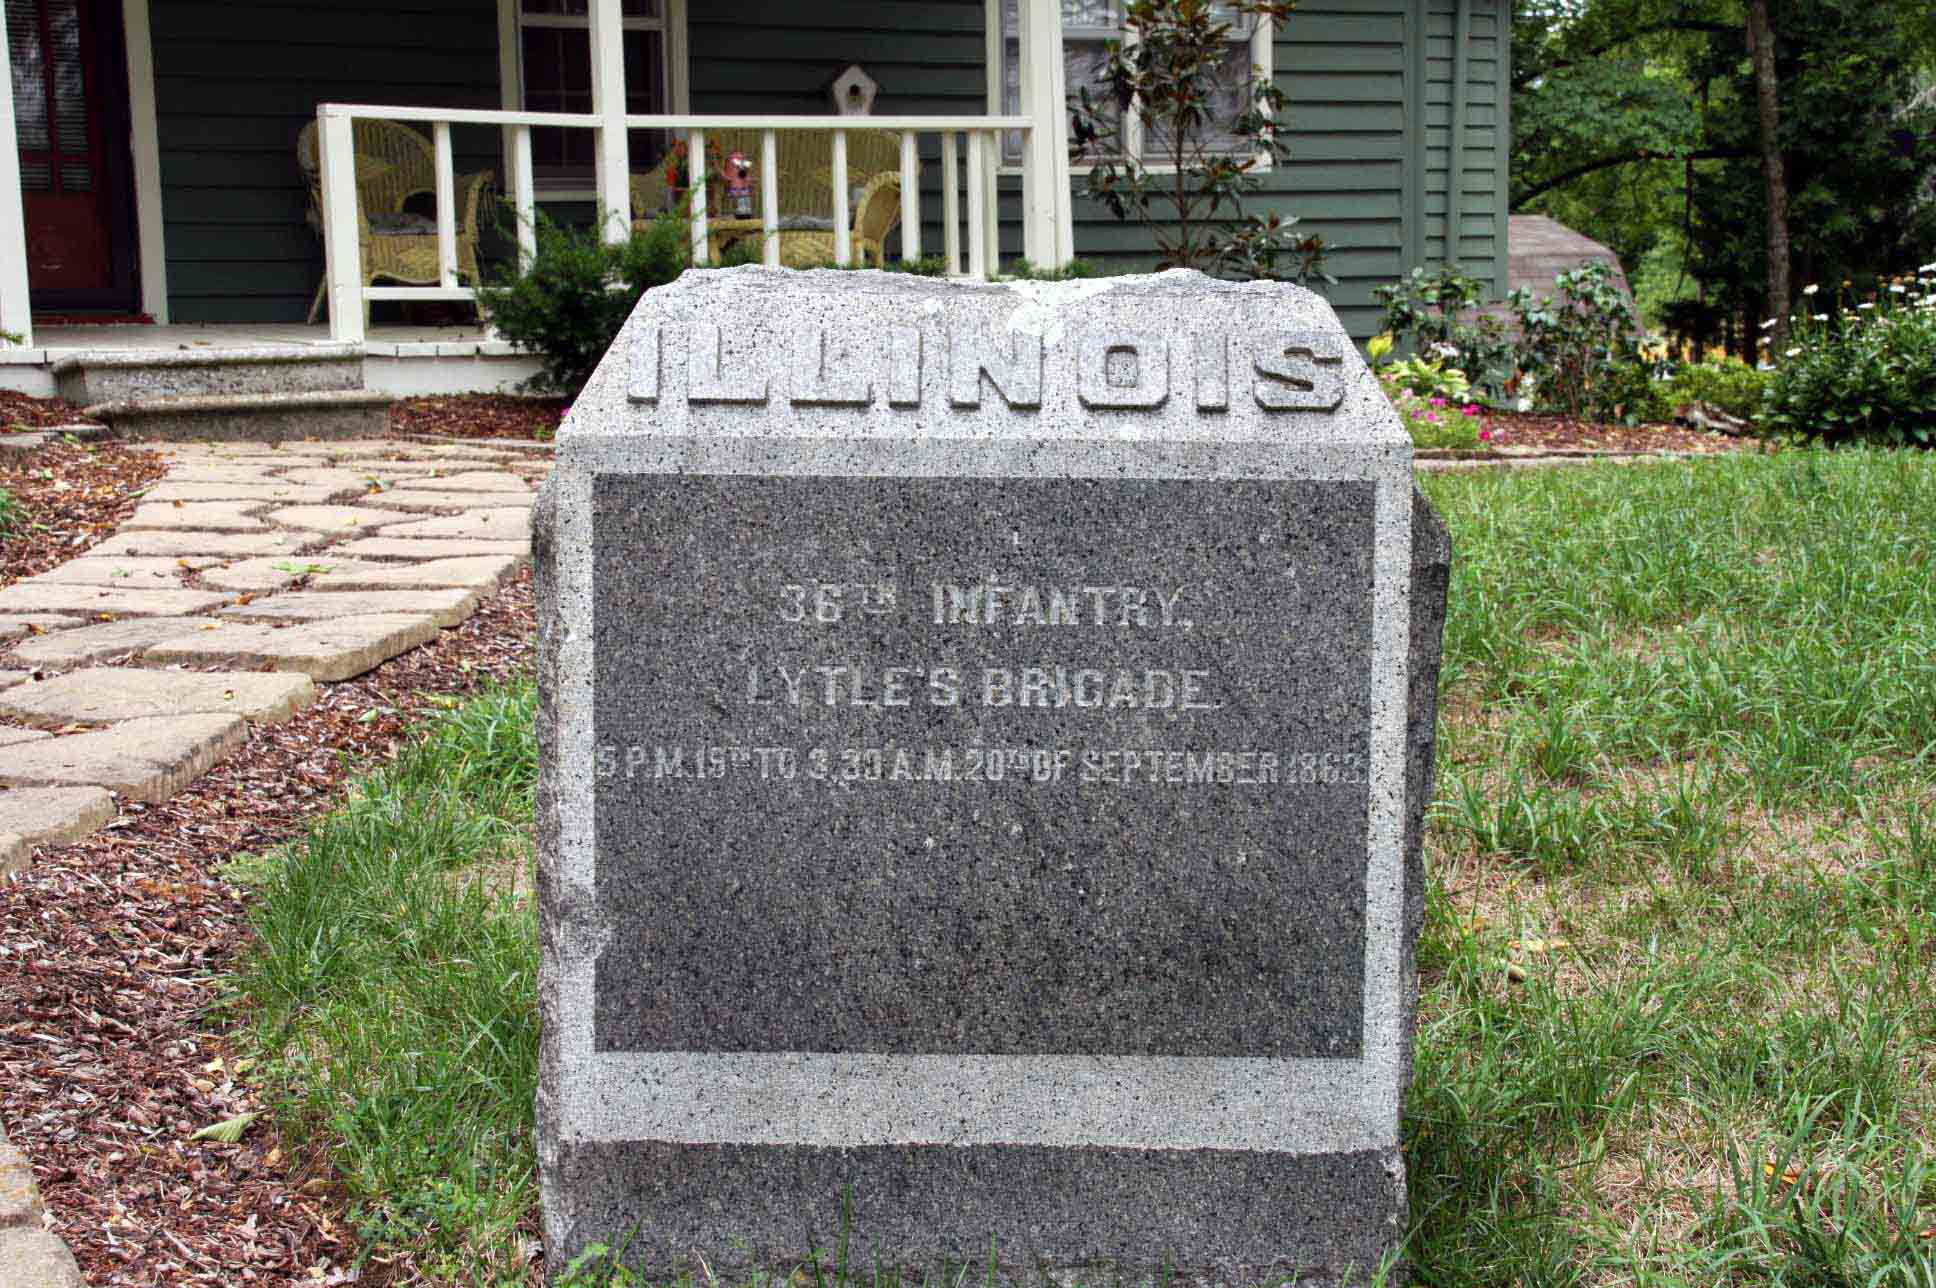 36th Illinois Infantry Regiment Marker, click photo to enlarge.